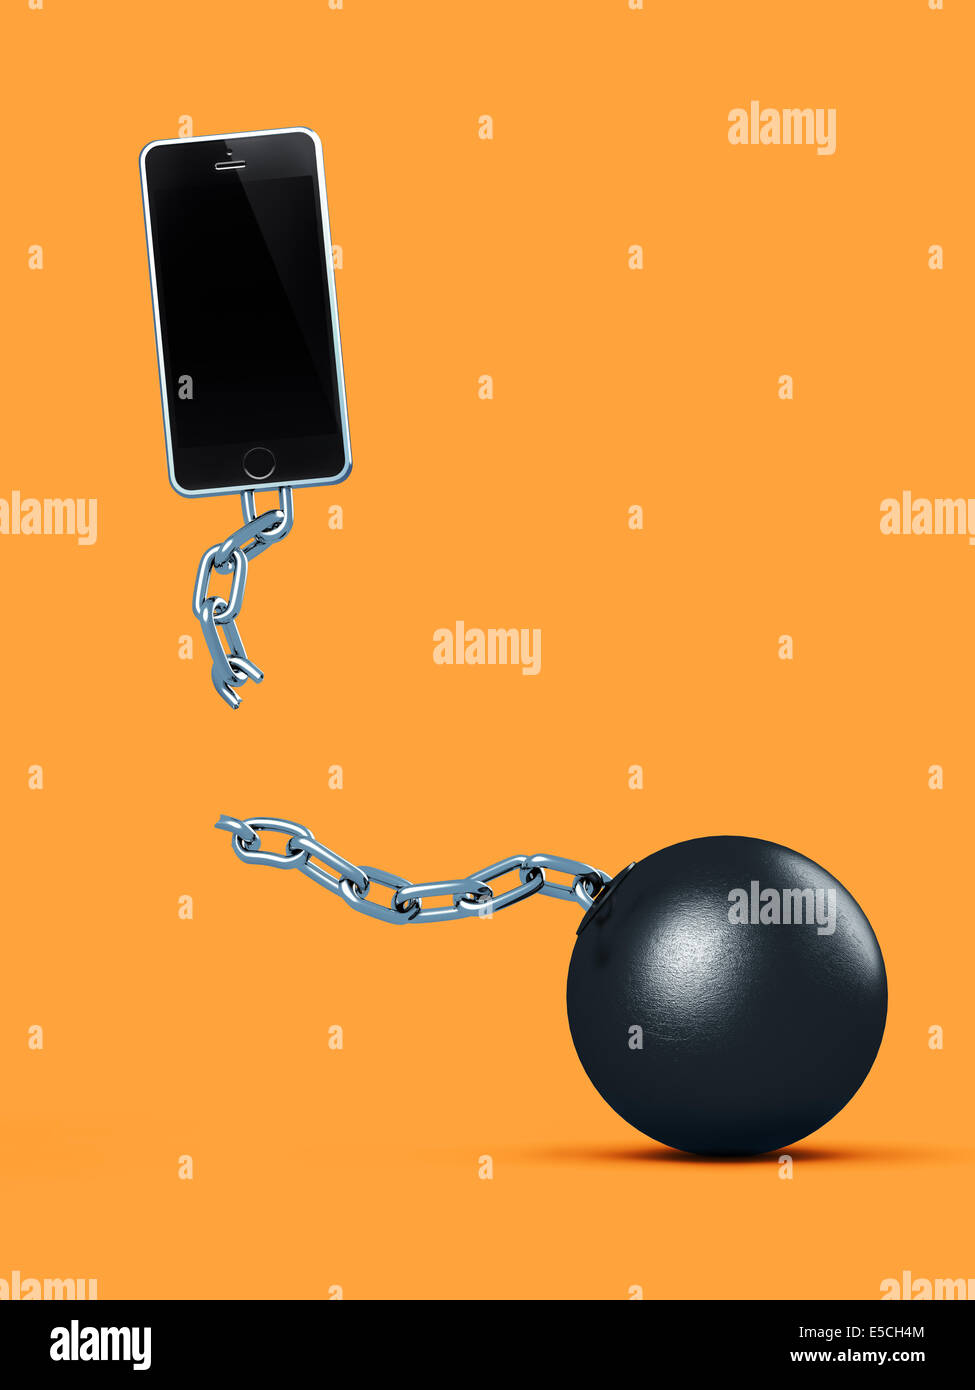 Cellphone breaking away from ball and chain, breaking a contract, contract-free service, conceptual illustration - Stock Image